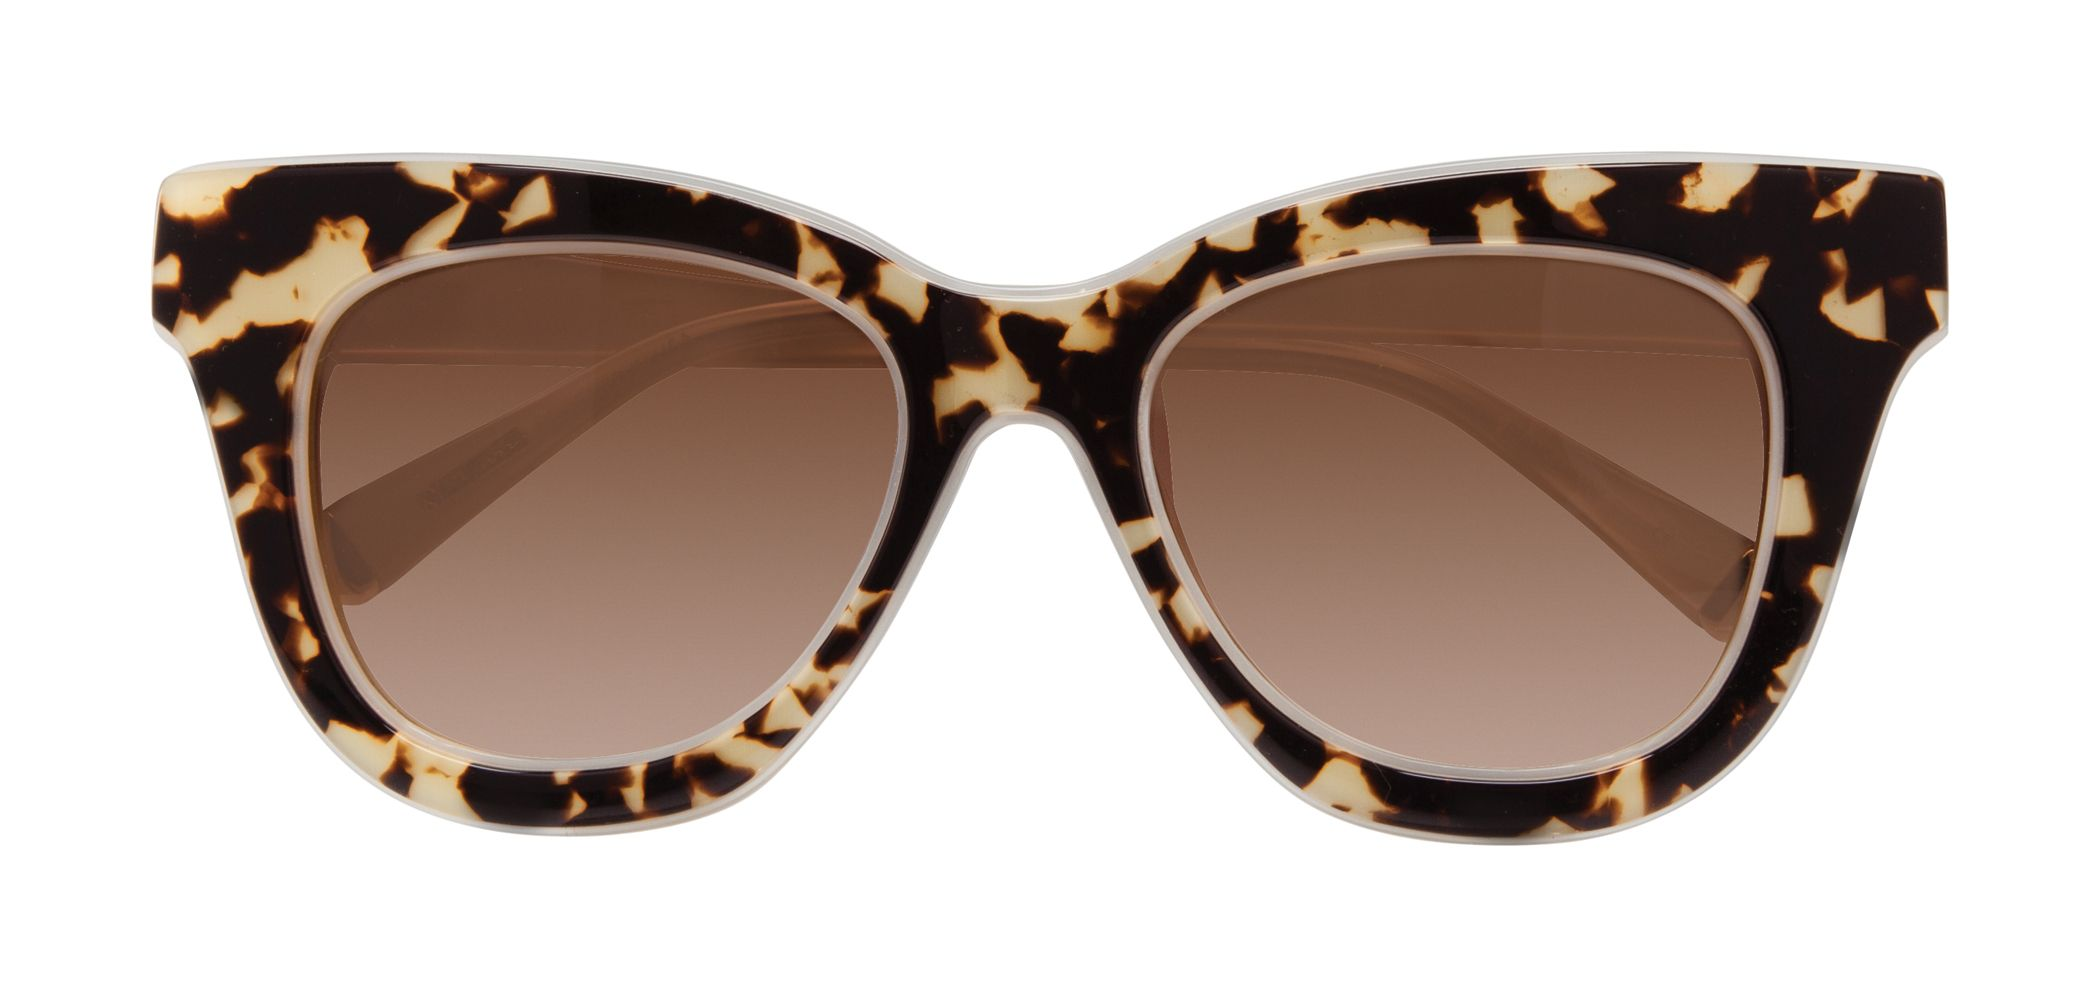 Kate Young for Tura - Sunglasses